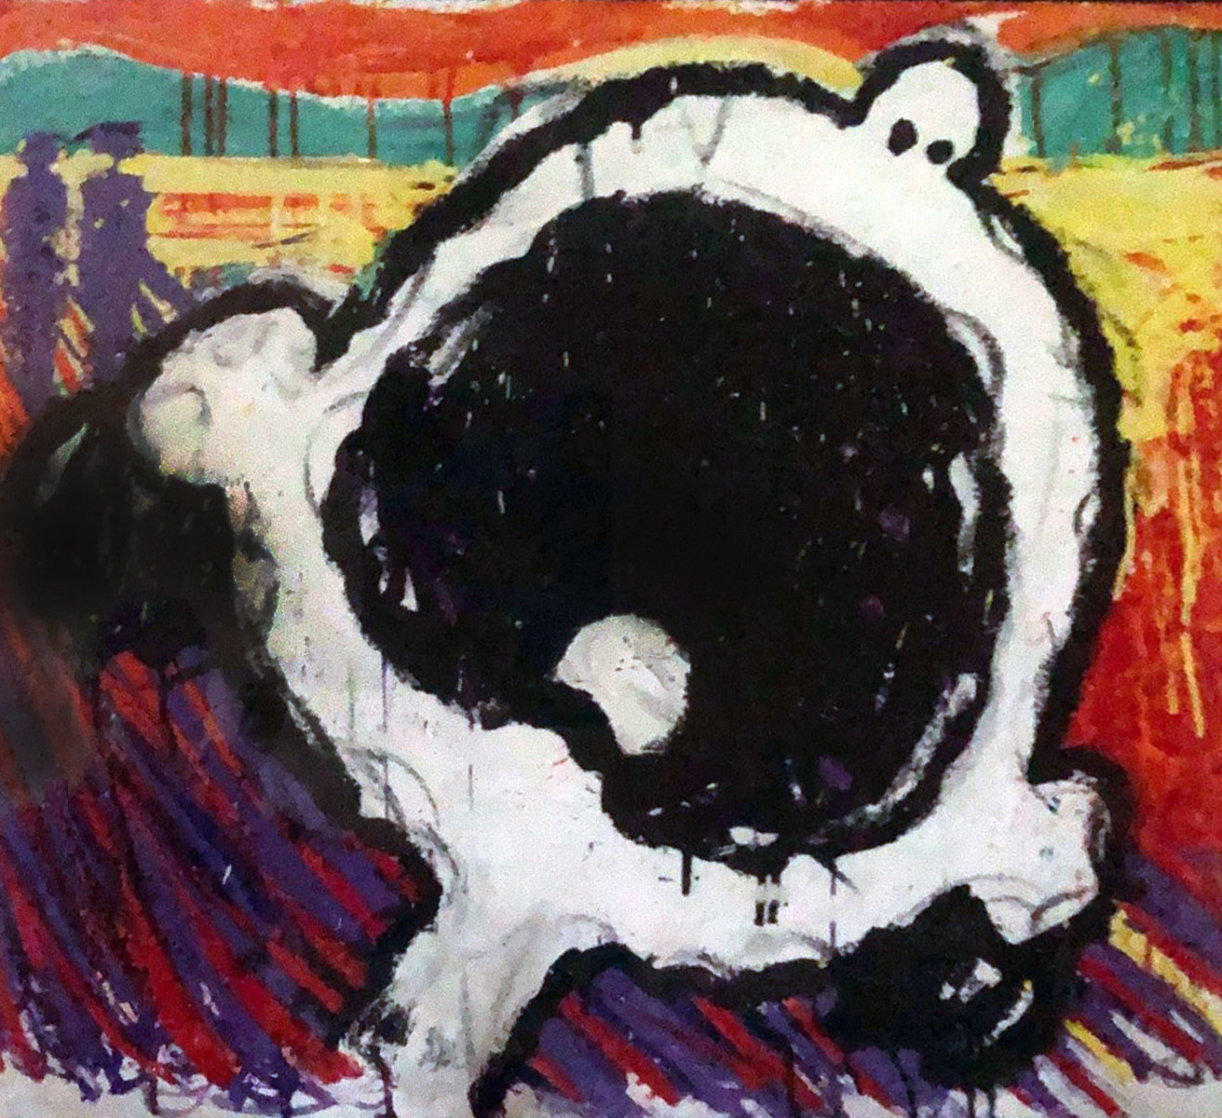 Lucy's Scream 1995 Limited Edition Print by Tom Everhart